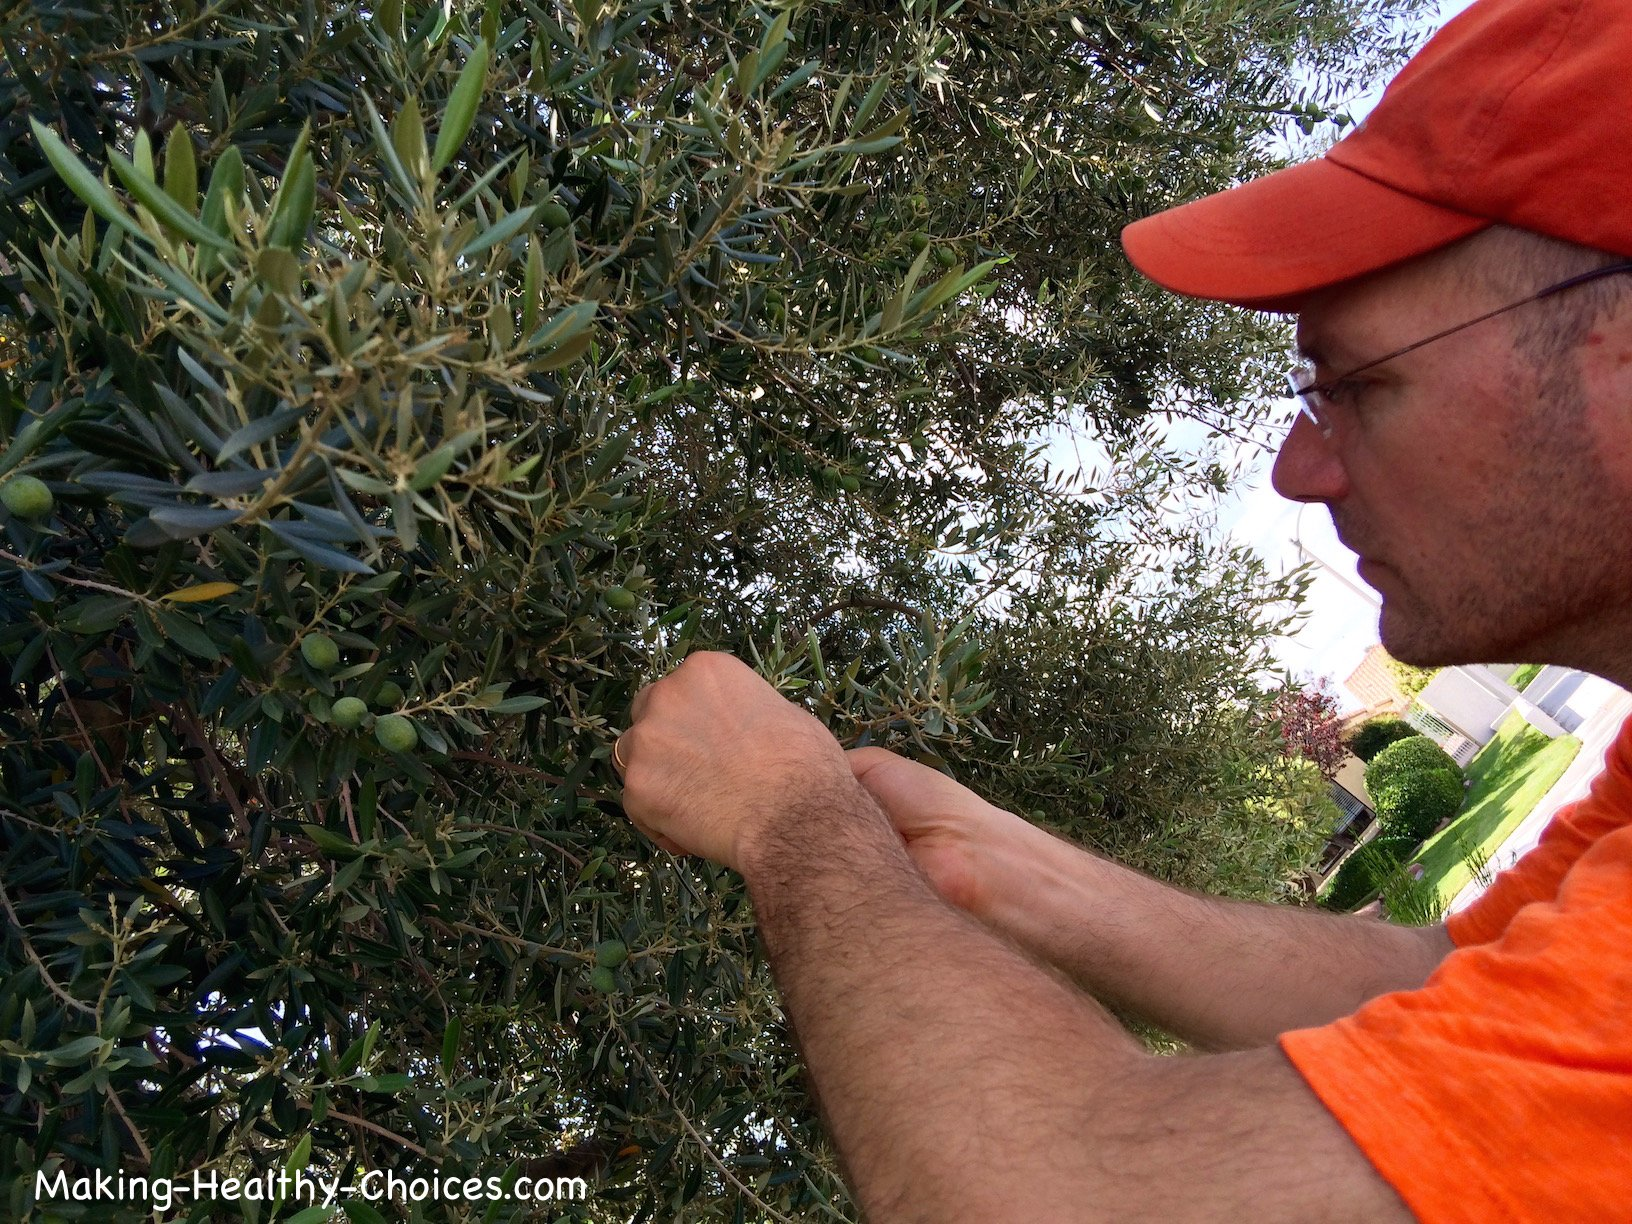 Harvesting Olive Leaves